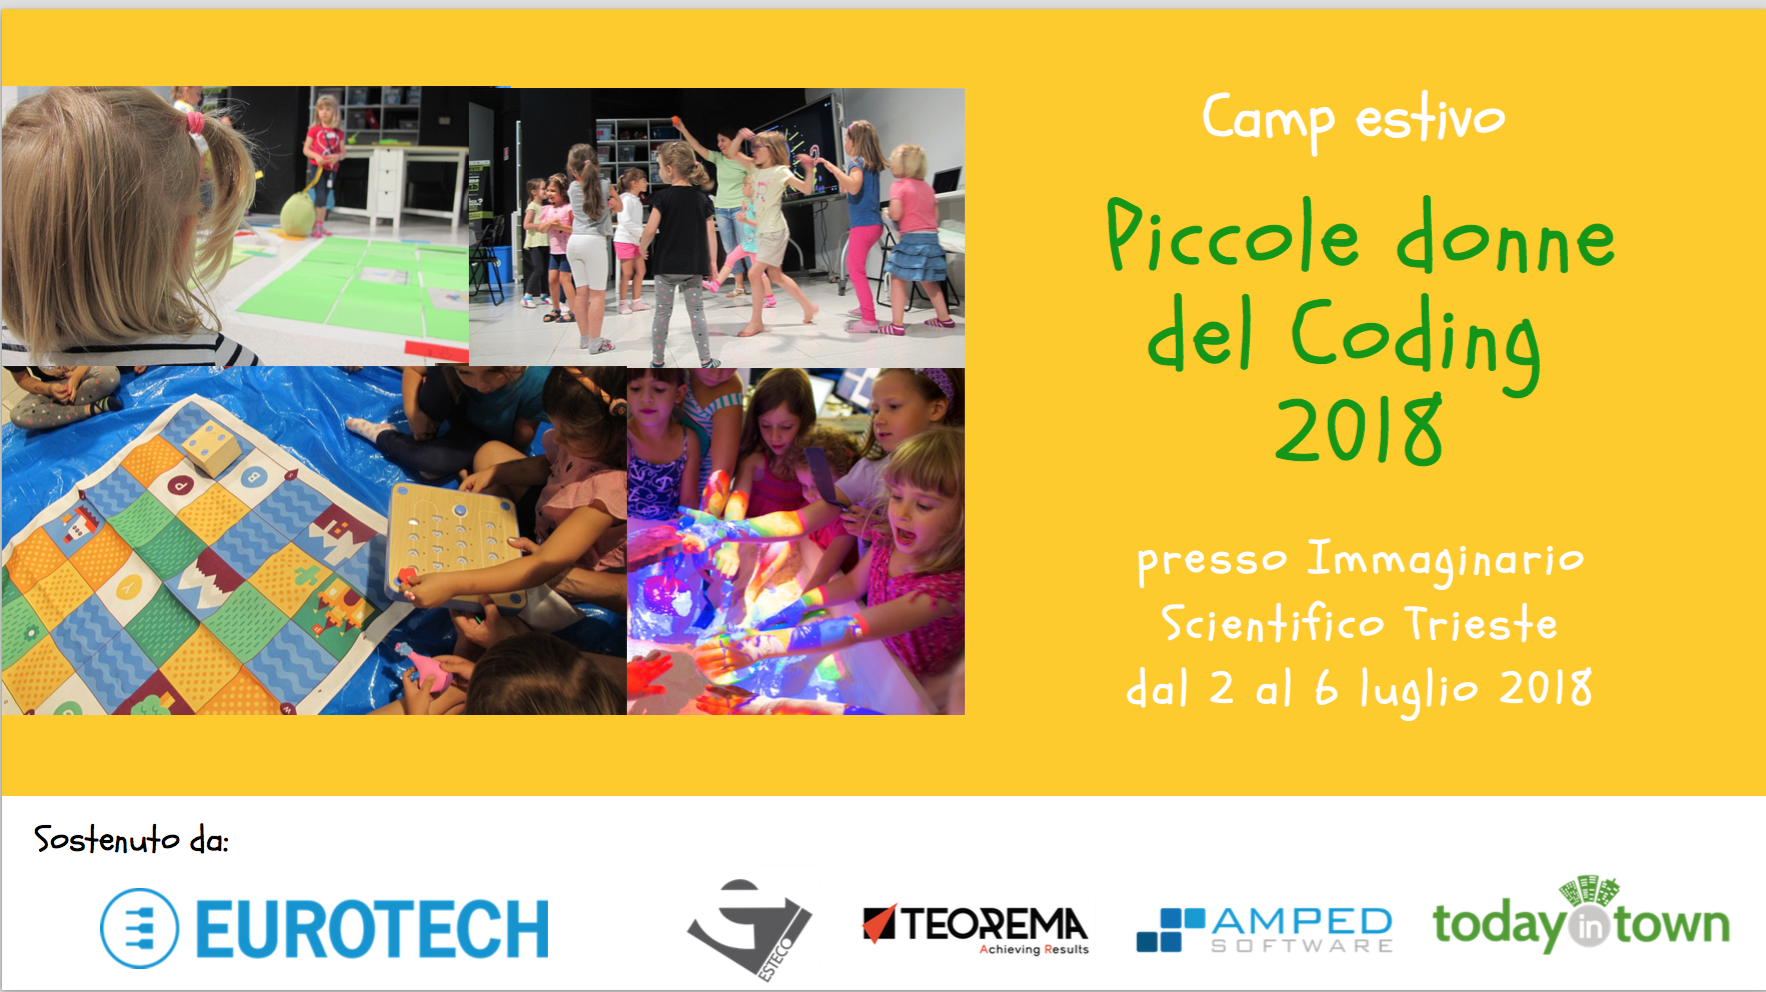 FB Cover_Piccole donne del coding 2018